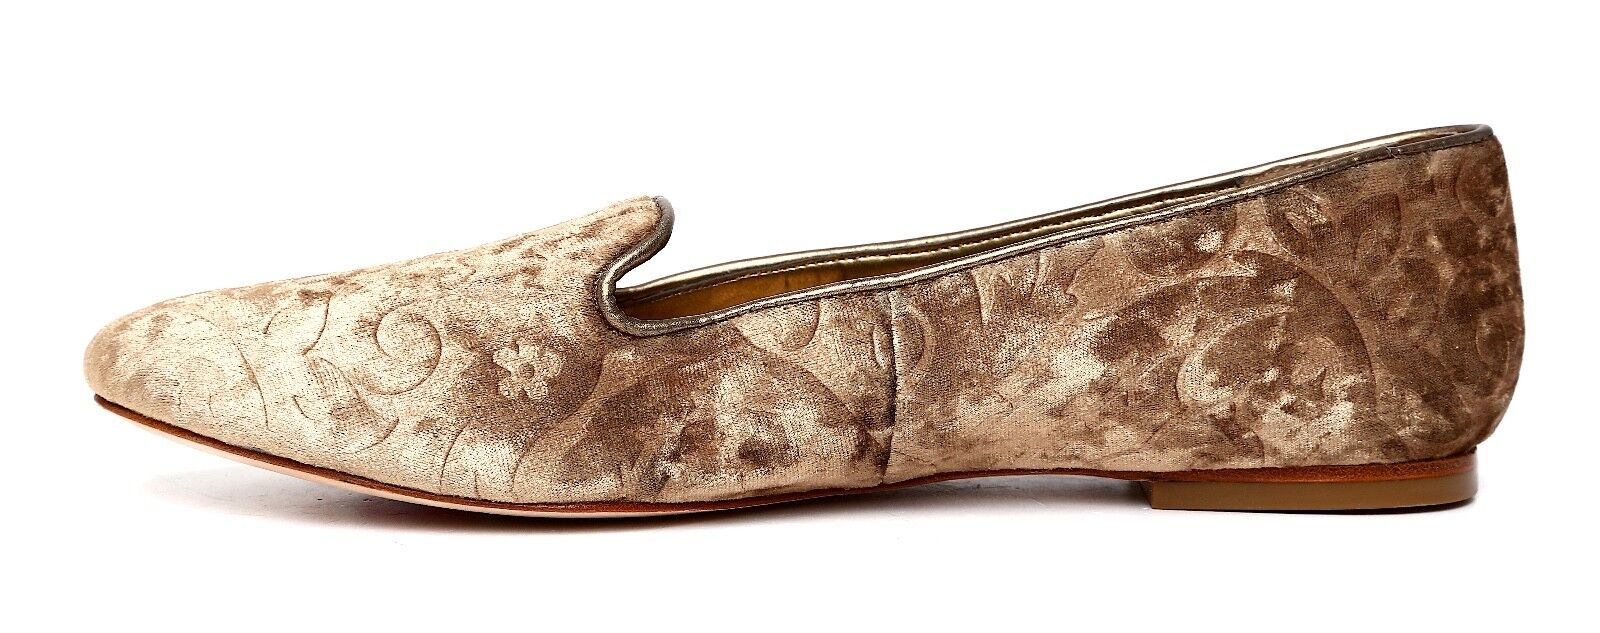 Ivanka Trump Kenni2 Loafer Flat Gold Damens Sz 6.5 6.5 6.5 M 5040 95e449